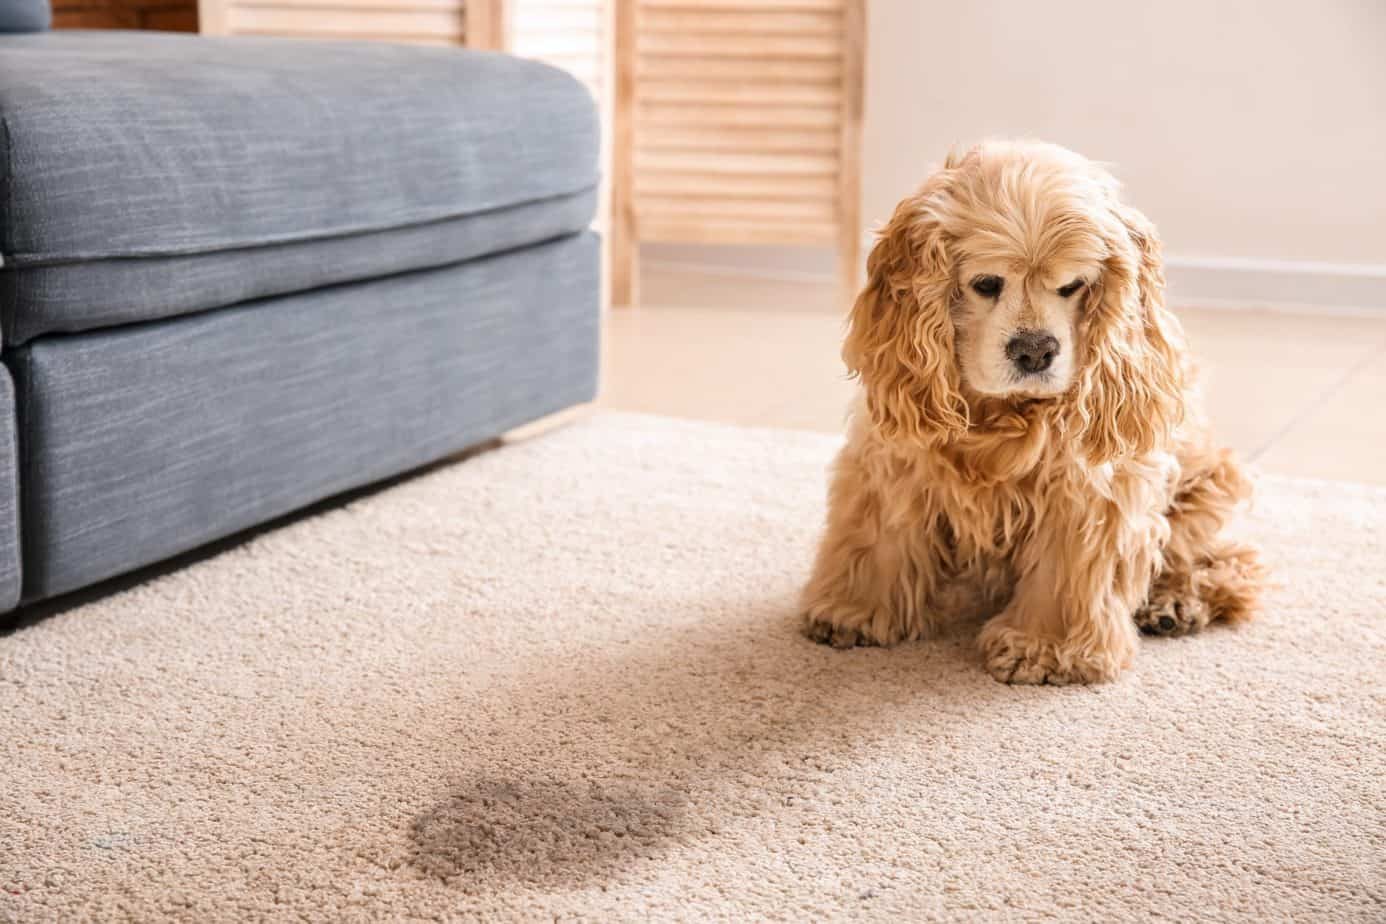 Sad cocker spaniel sits near urine stain. The best way to remove pet stains is by cleaning as soon as possible. Cleaning urine immediately also helps avoid possible discoloration.